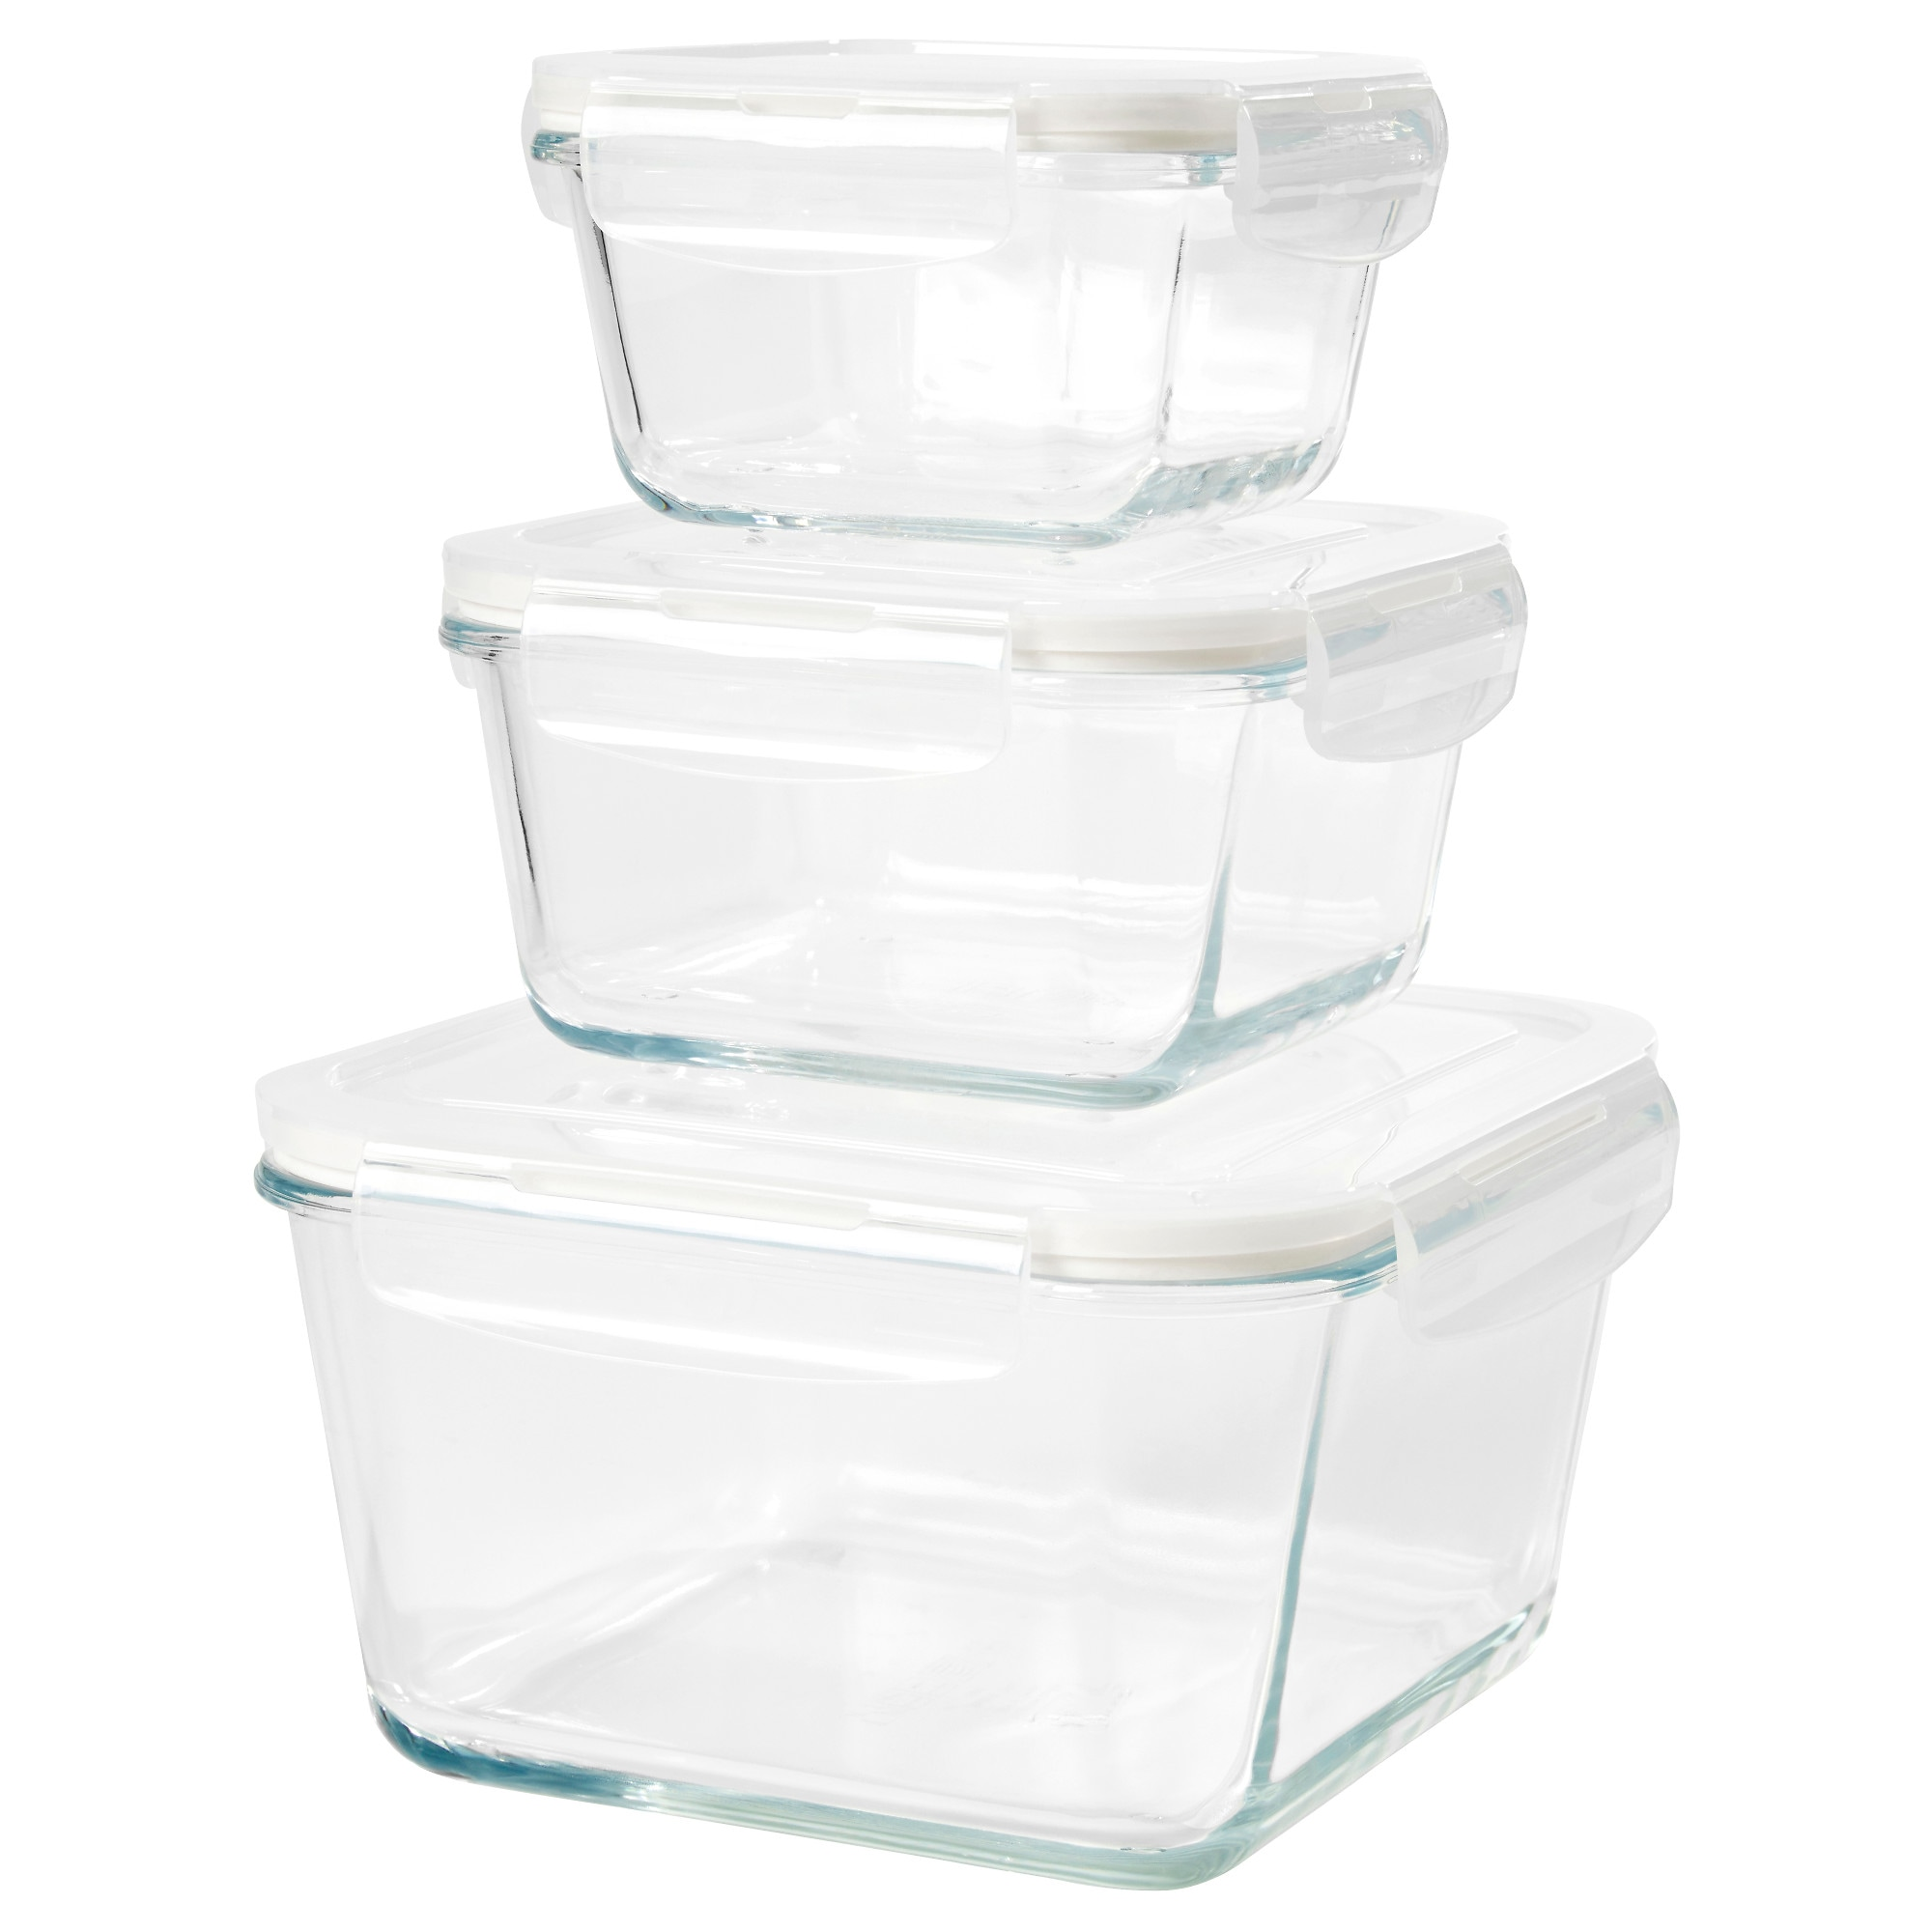 FRTROLIG Food container set of 3 IKEA